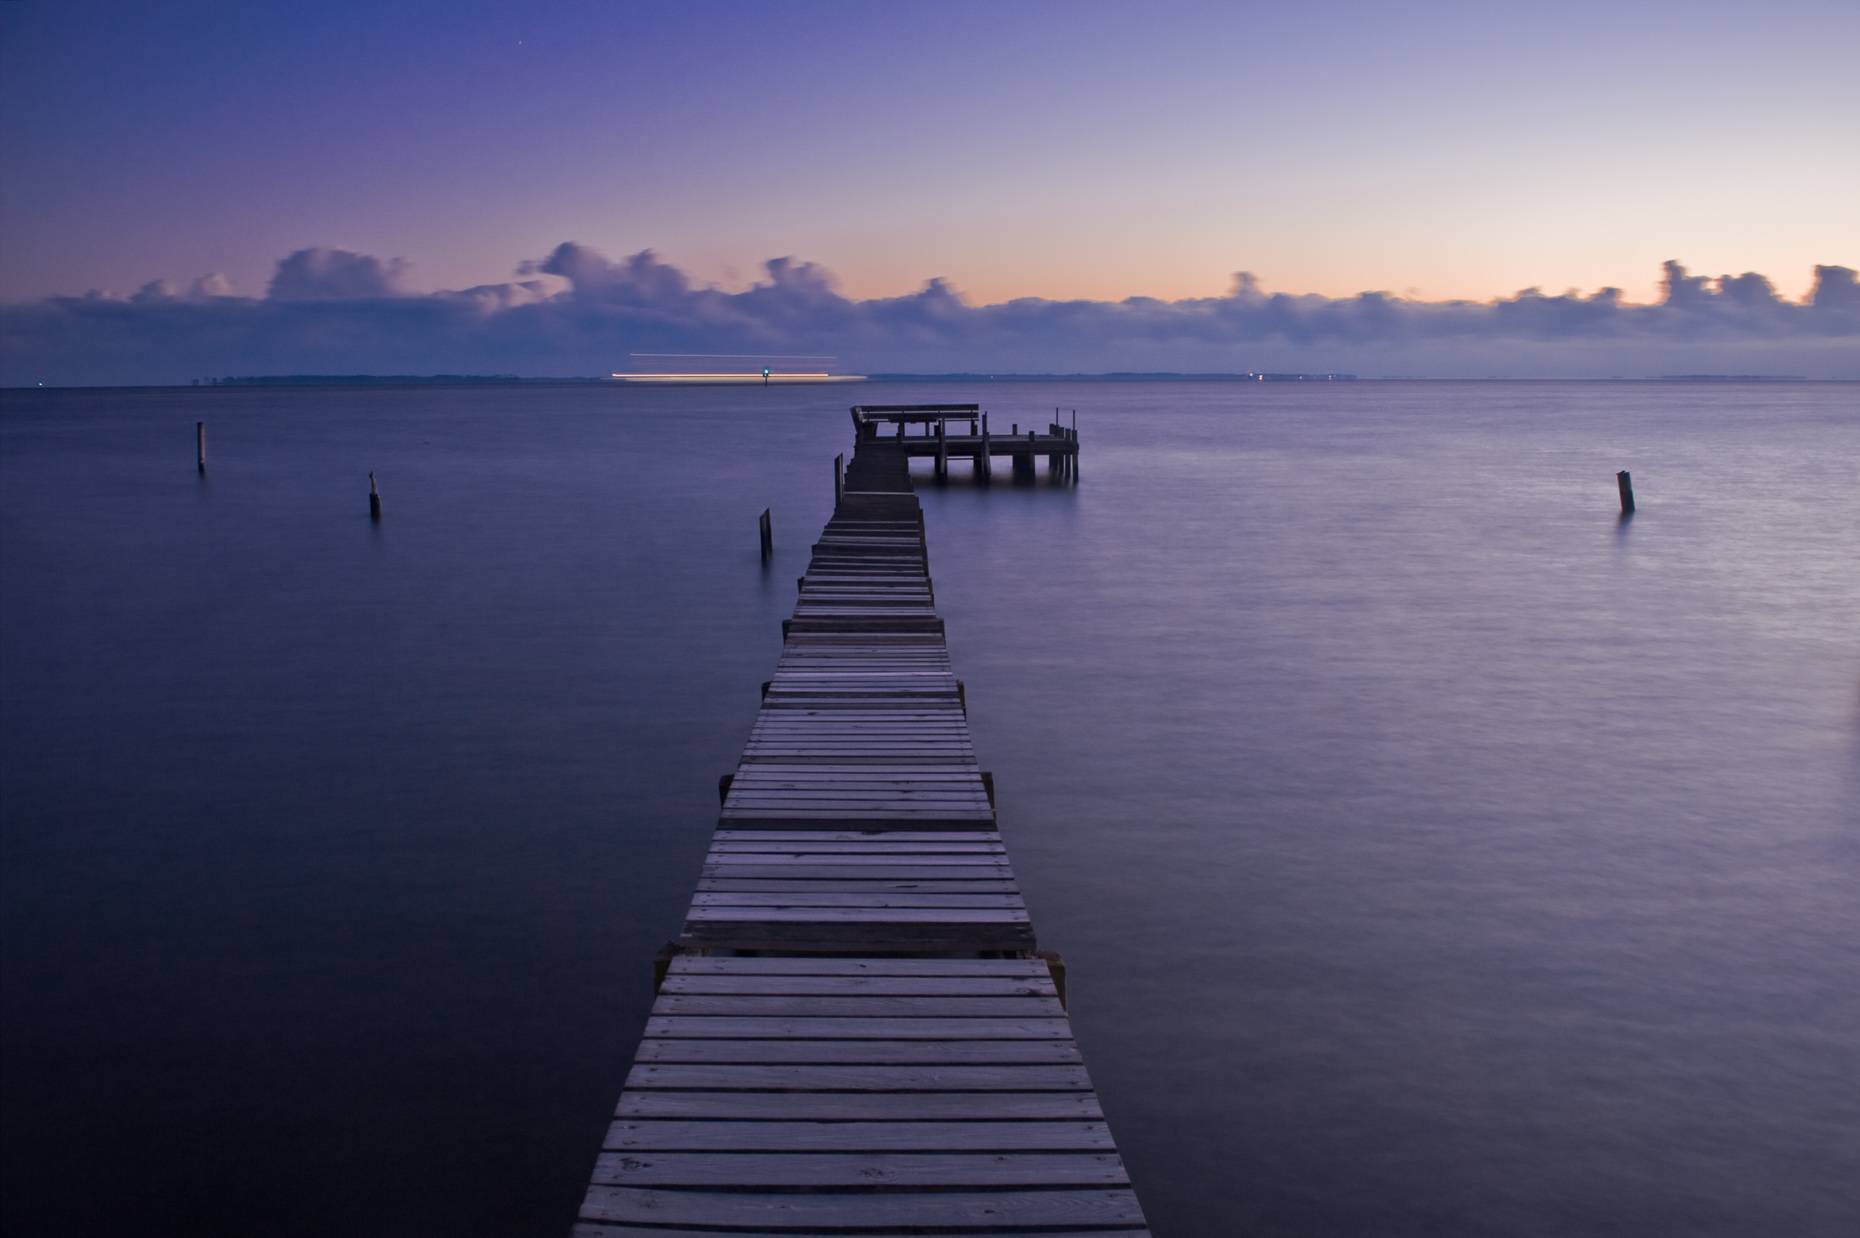 Quiet dock in water at dawn twilight, near Currituck NC.